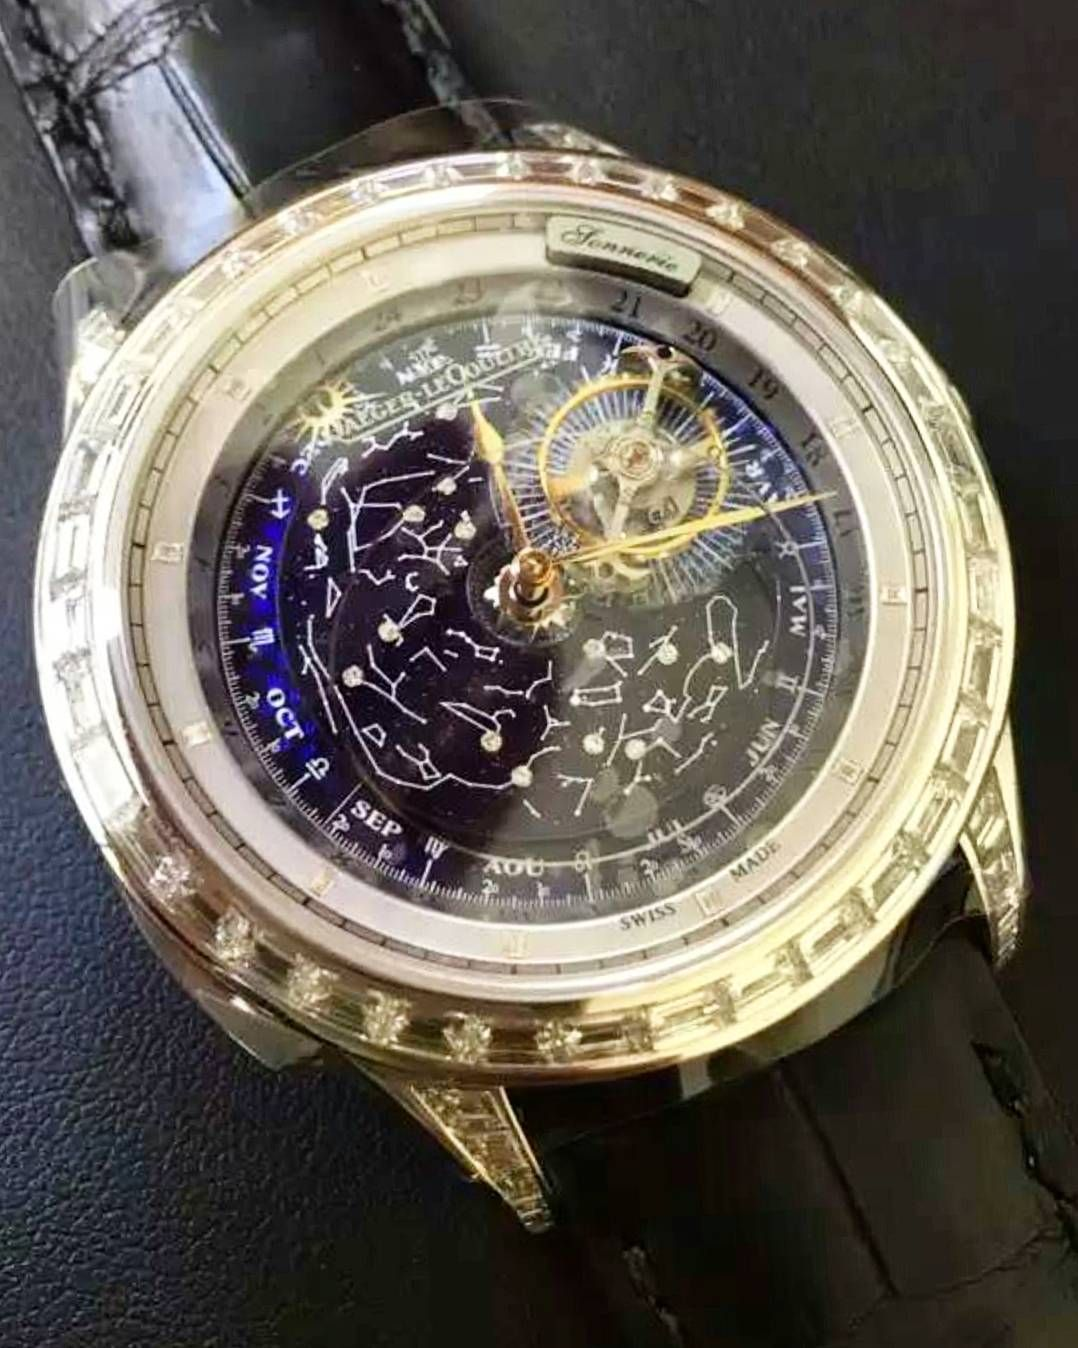 Just past midnight here in Asia and got this sick photo from a buddy.. The baguette set Jaeger-LeCoultre master grande complications sky chart with minute repeater  by vc_limitededitions